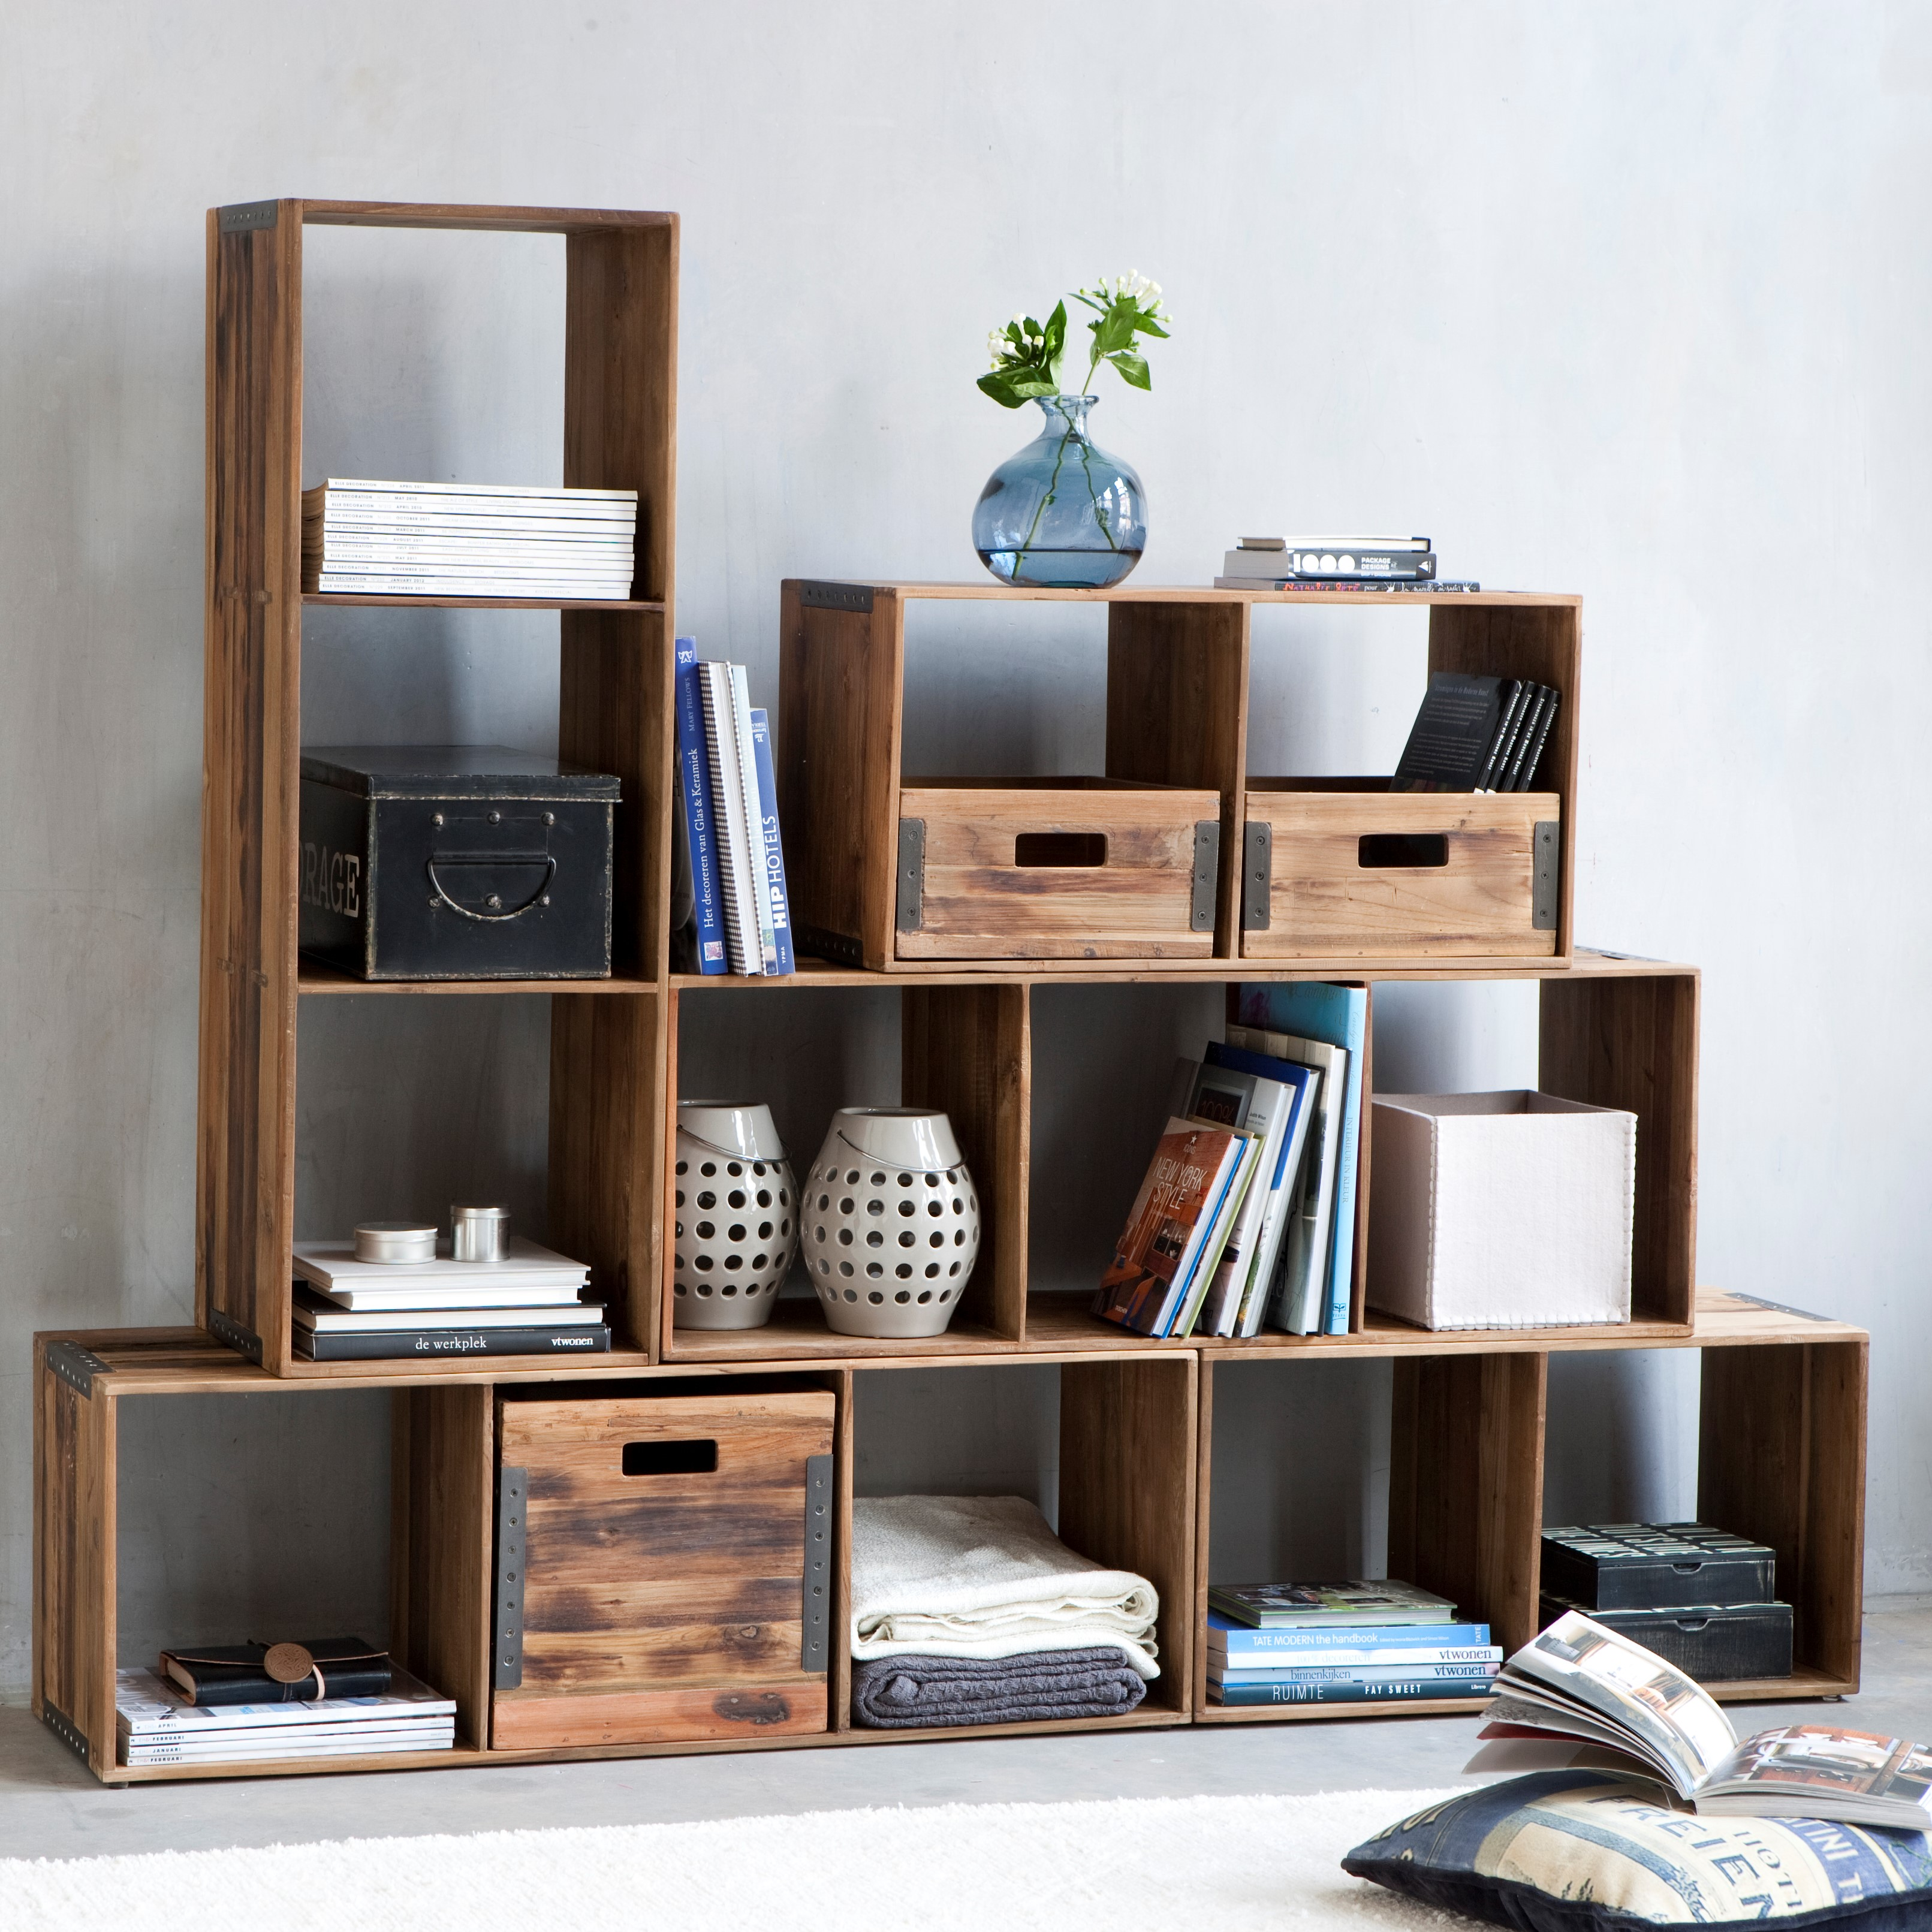 out of the box dBodhi storage units - Make Your House a Home ...